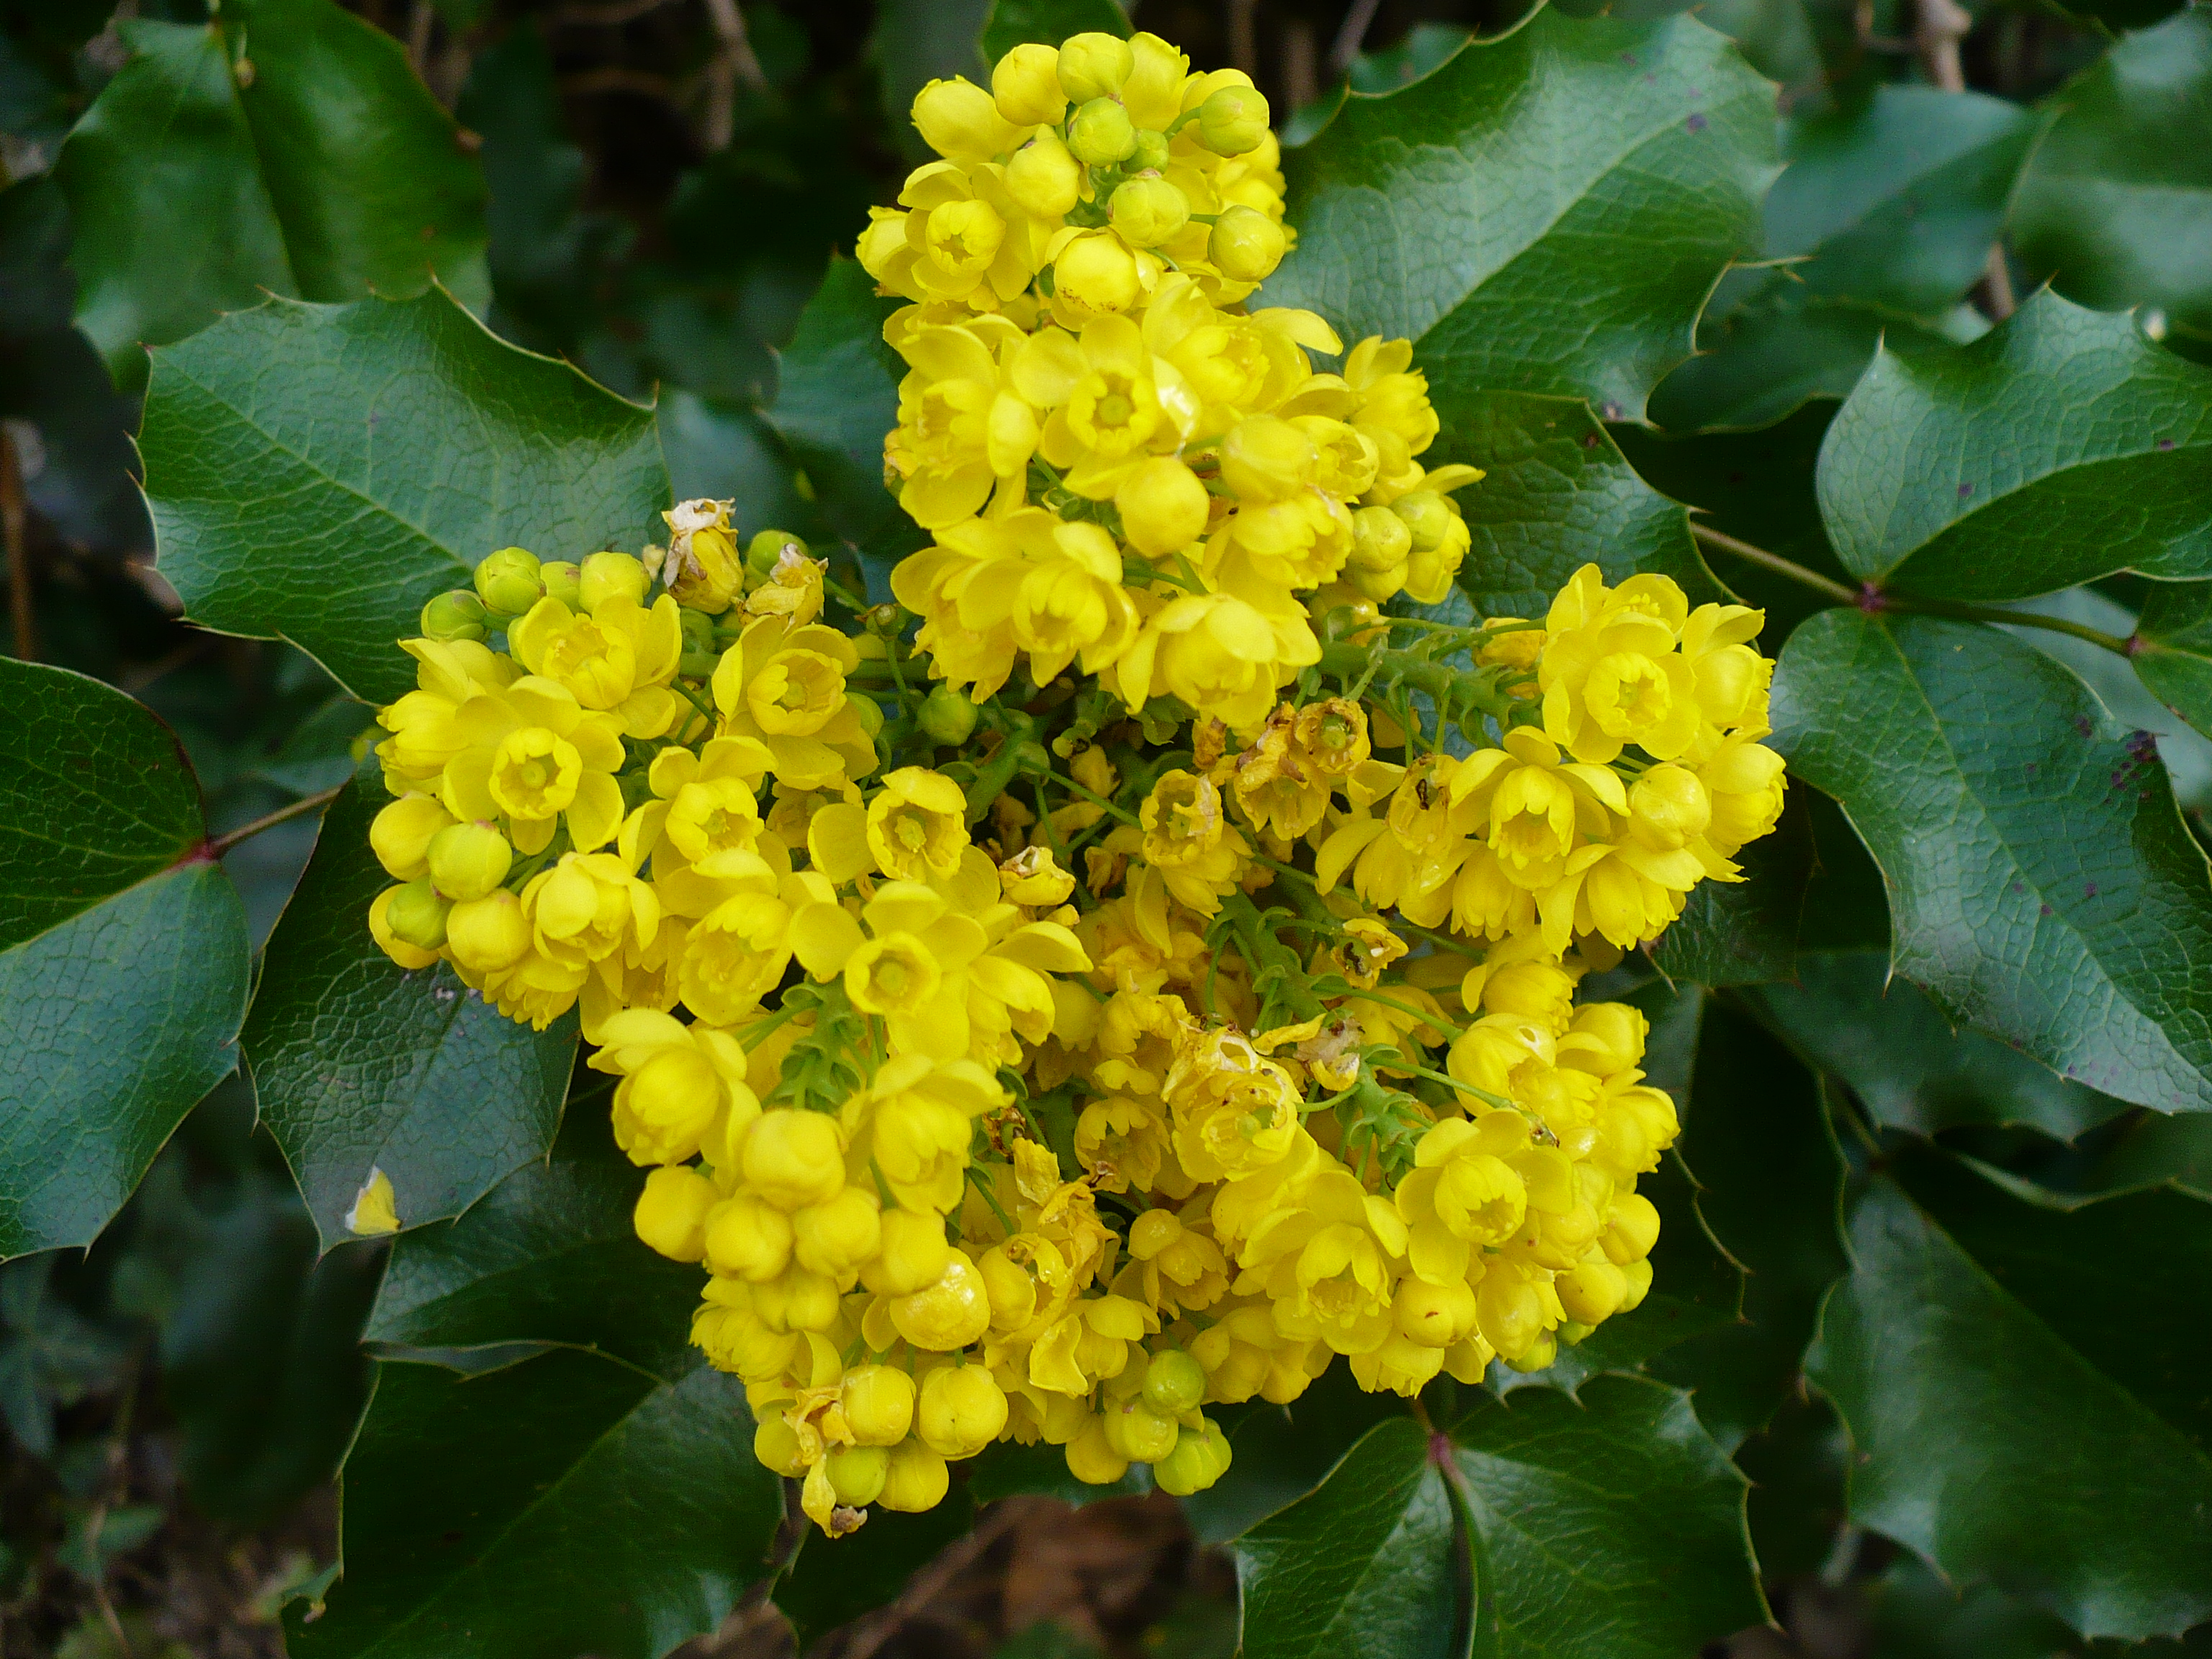 Clusters of small yellow flowers of the Oregon grape surrounded by its Holly-like leaves (Mahonia aquifolium)